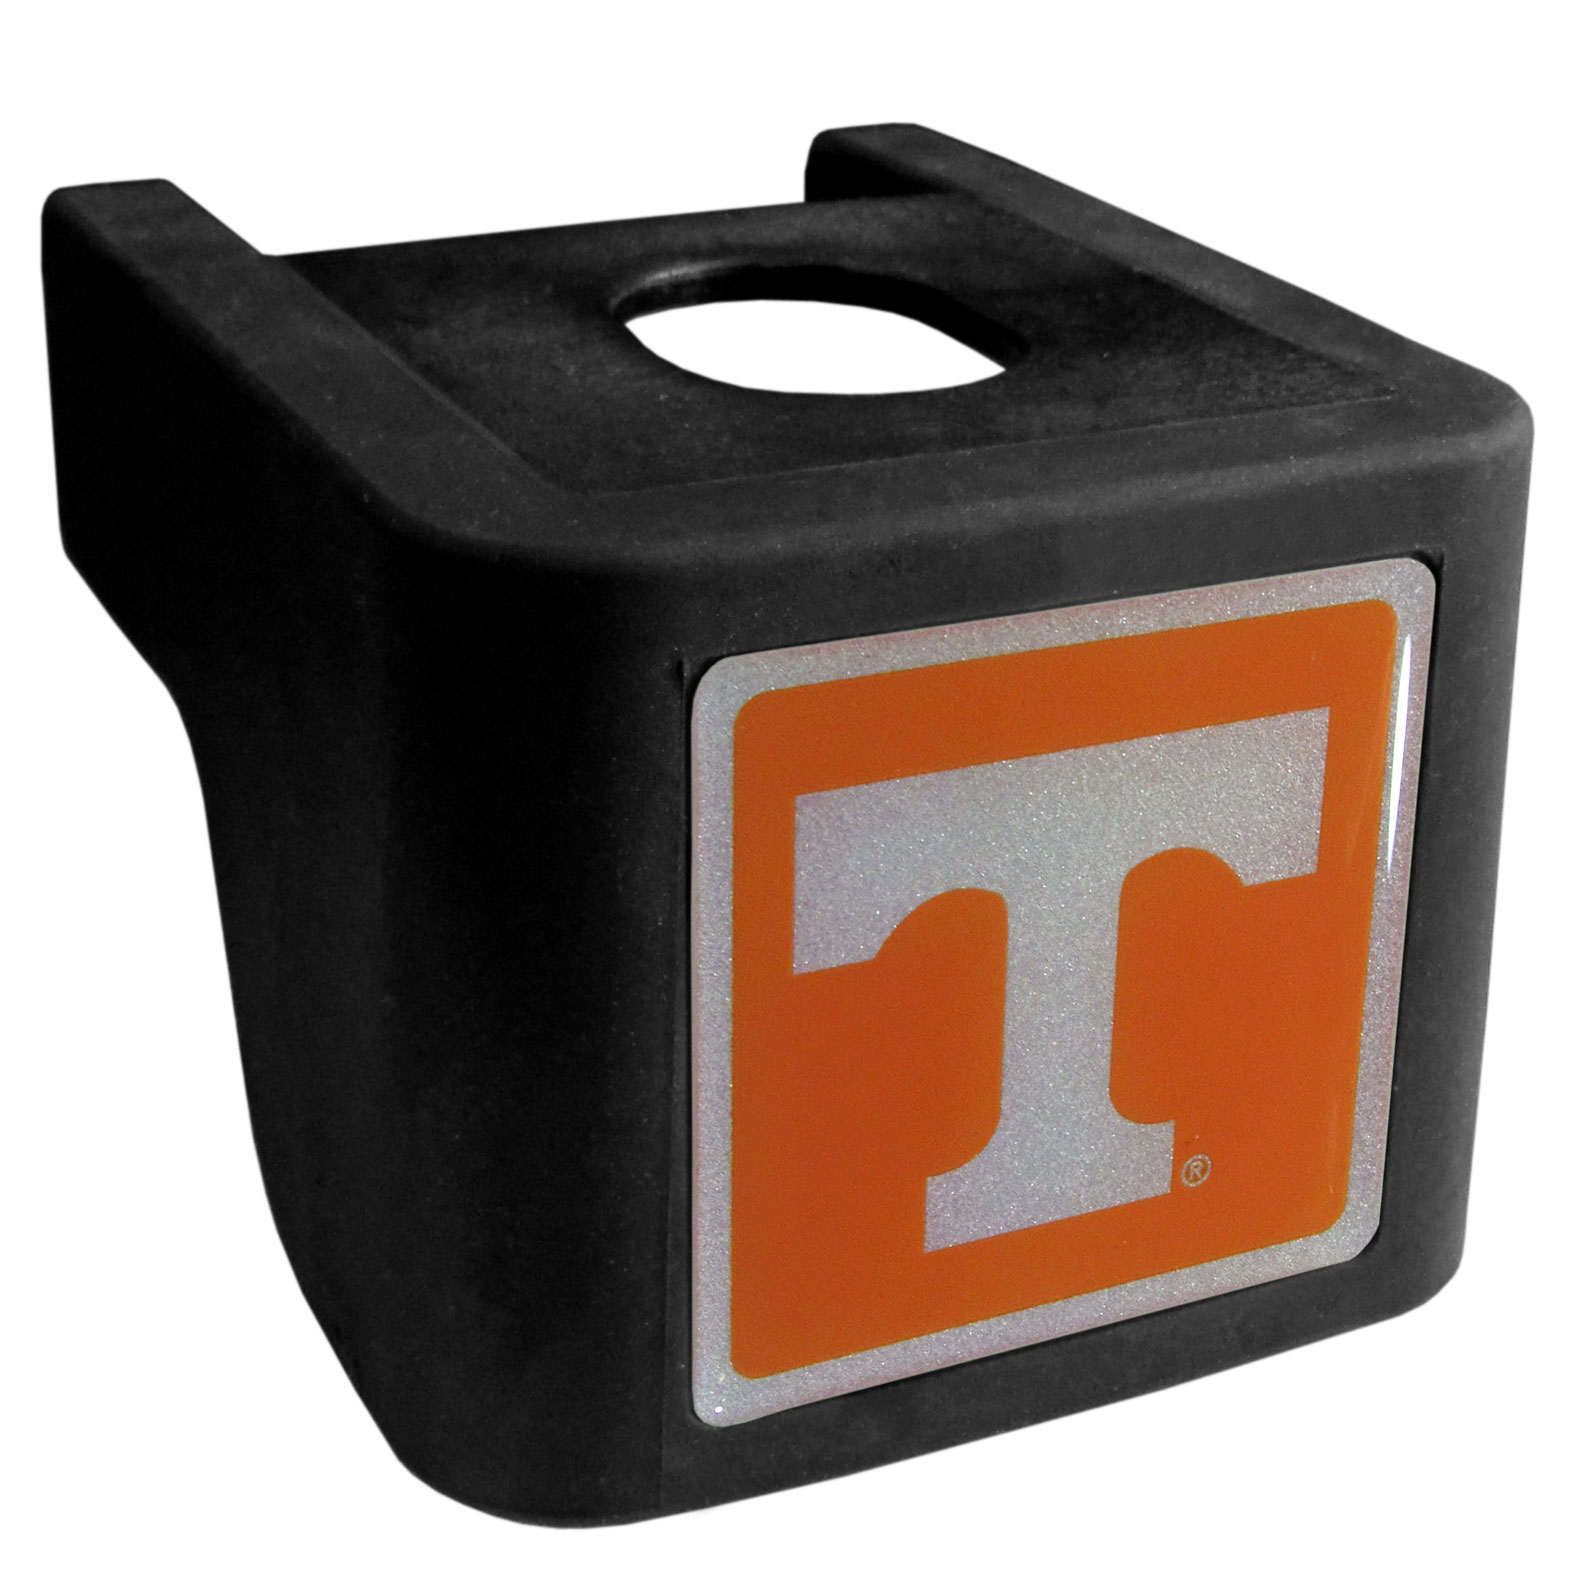 Tennessee Volunteers Shin Shield Hitch Cover - This unique hitch cover features a large Tennessee Volunteers logo. If you have ever hooked up a trailer or boat your have probably smashed your shins on the ball hitch a few times. This revolutionary shin shield hitch cover provides your much abused shins with the protection they deserve! The tough rubber hitch is rated to work with Class V hitch receivers hauling up to 17,000 gross trailer weight and 1,700 tongue weight allowing you to leave it on while hauling.